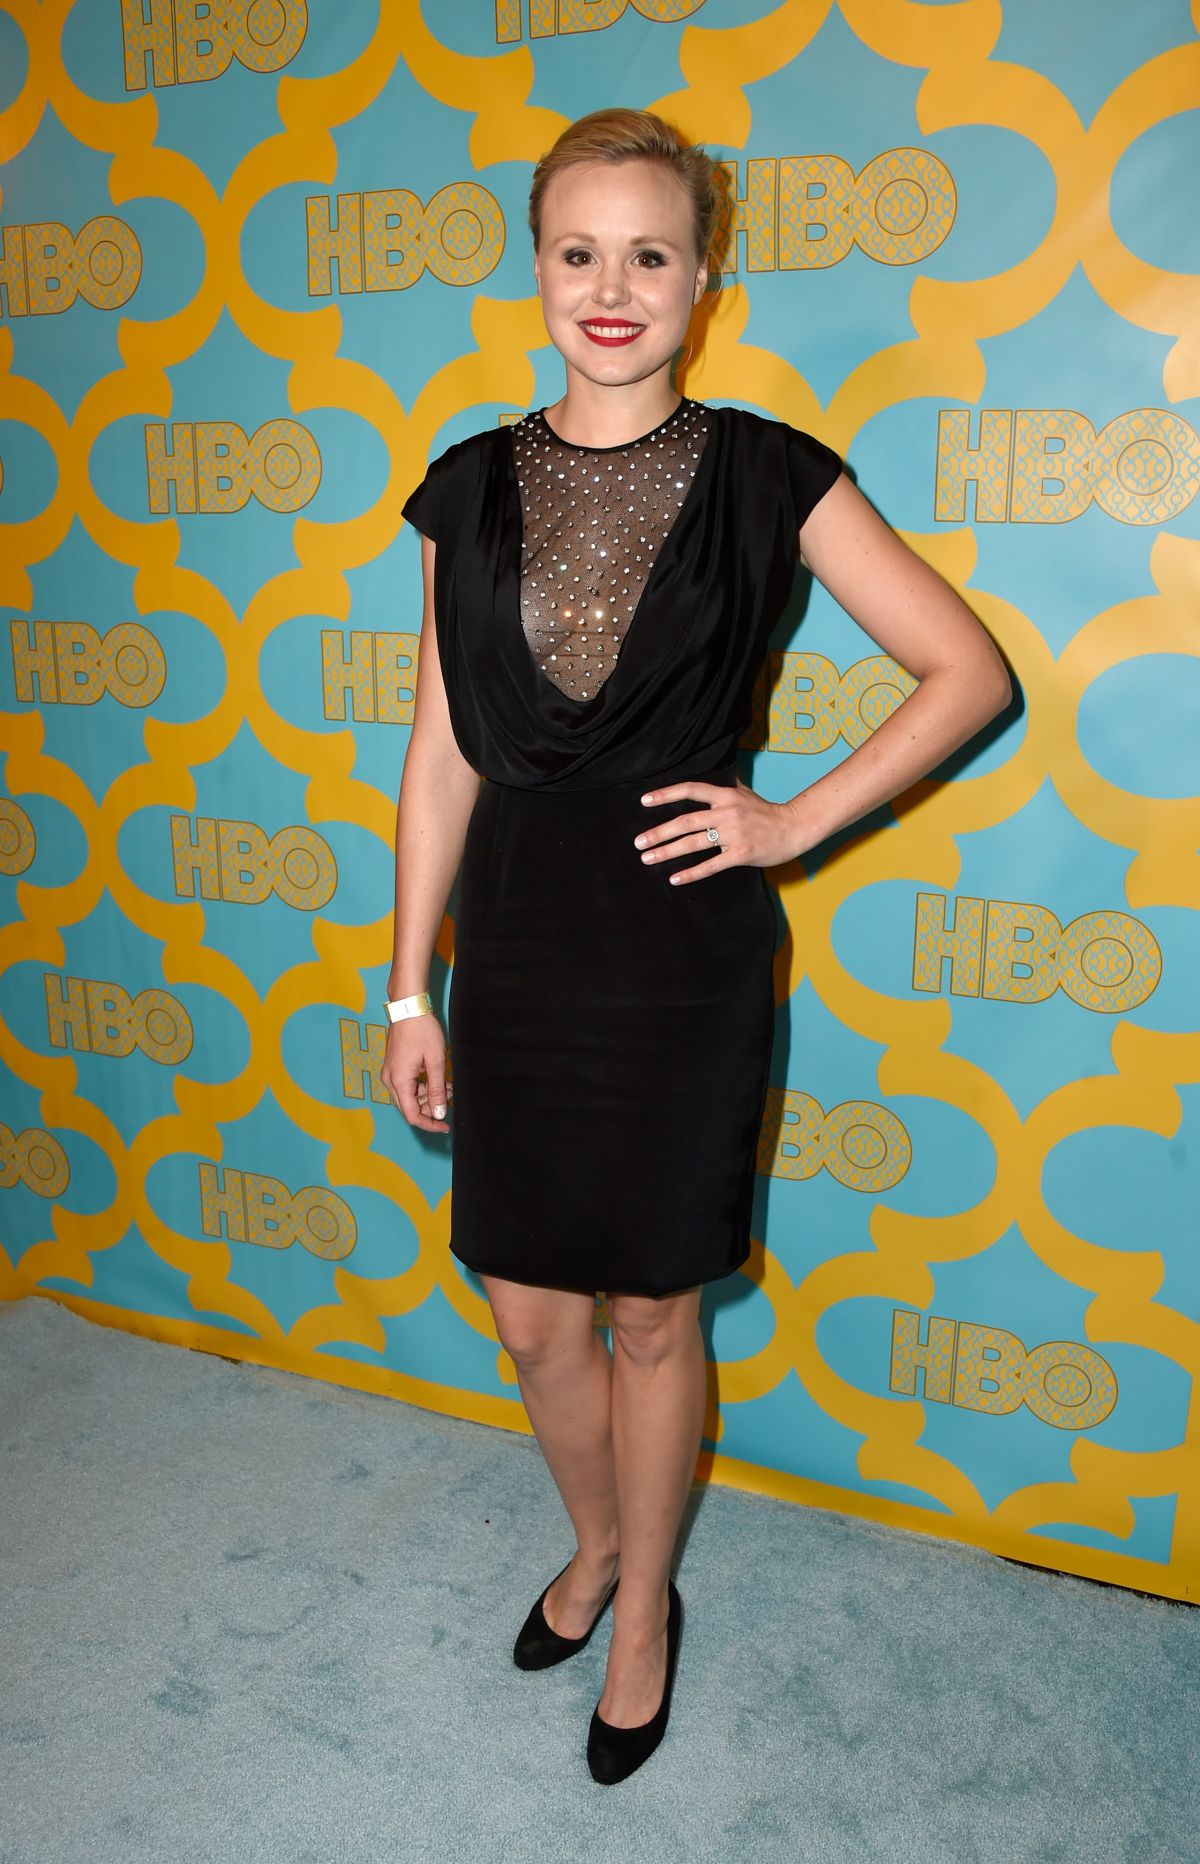 ALISON PILL at HBO Golden Globes Party in Bverly Hills